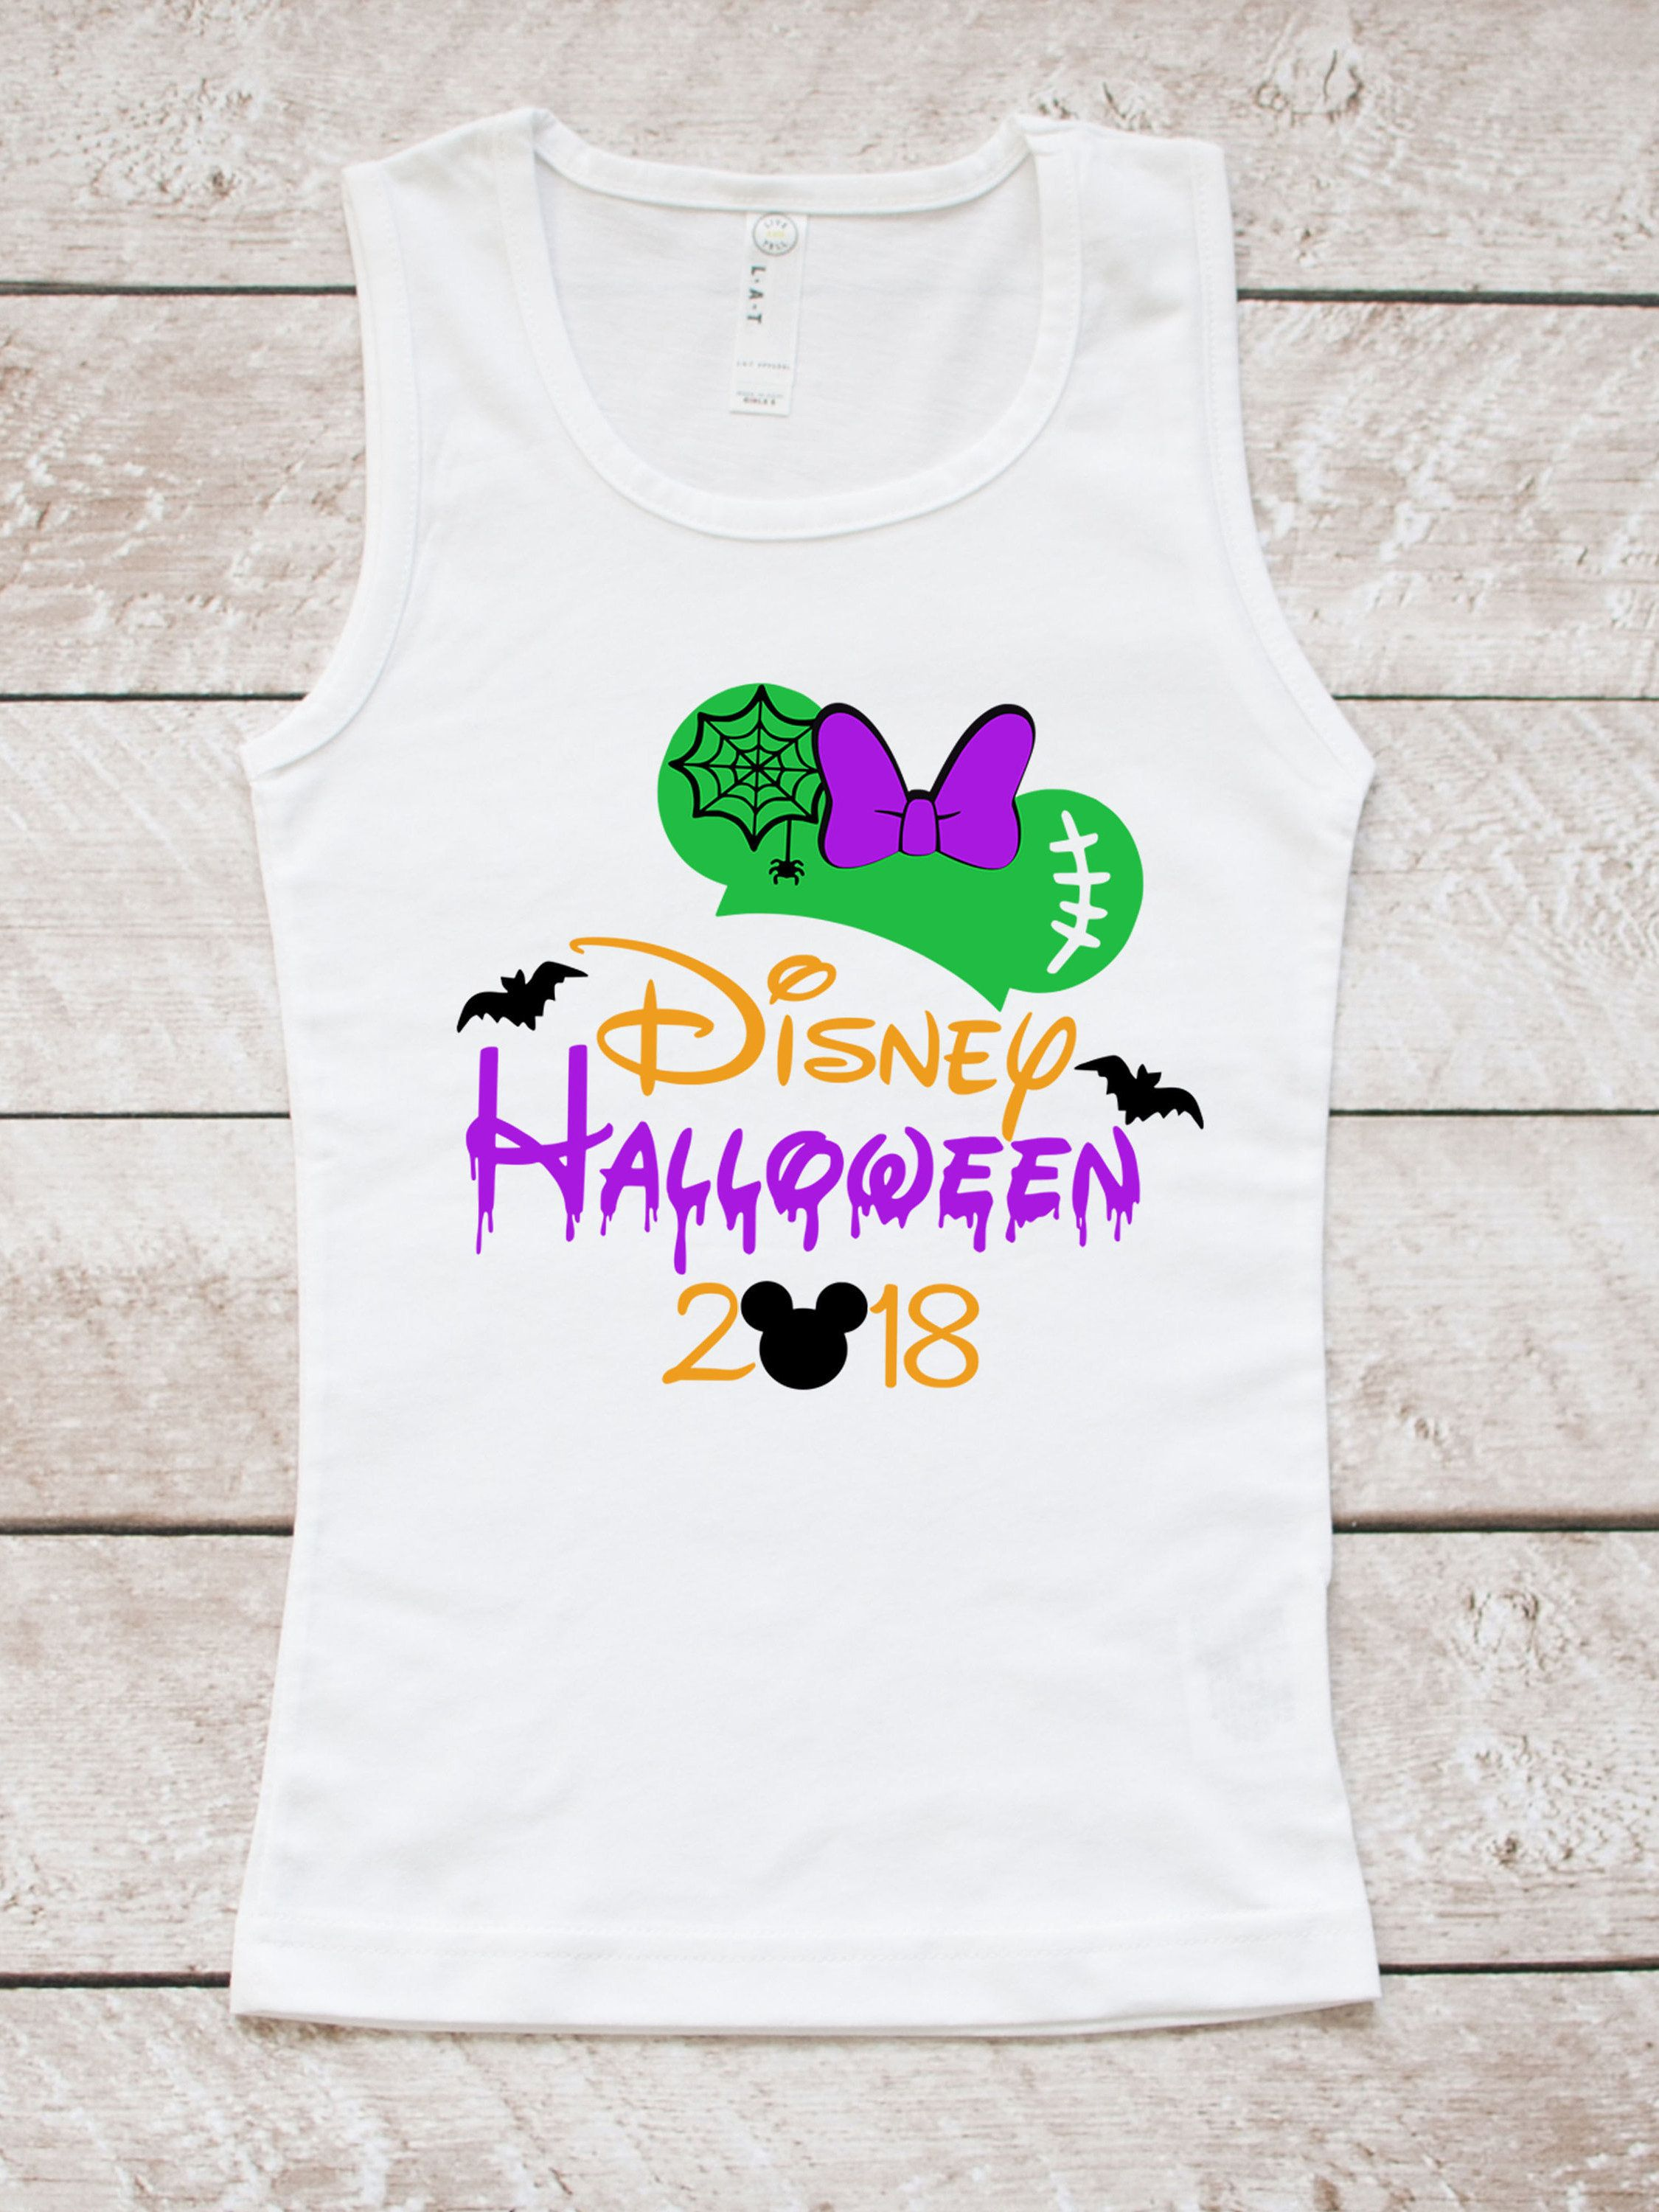 Disney Halloween Shirts Etsy.Disney Halloween Shirt Disney Shirt Personalized Shirt